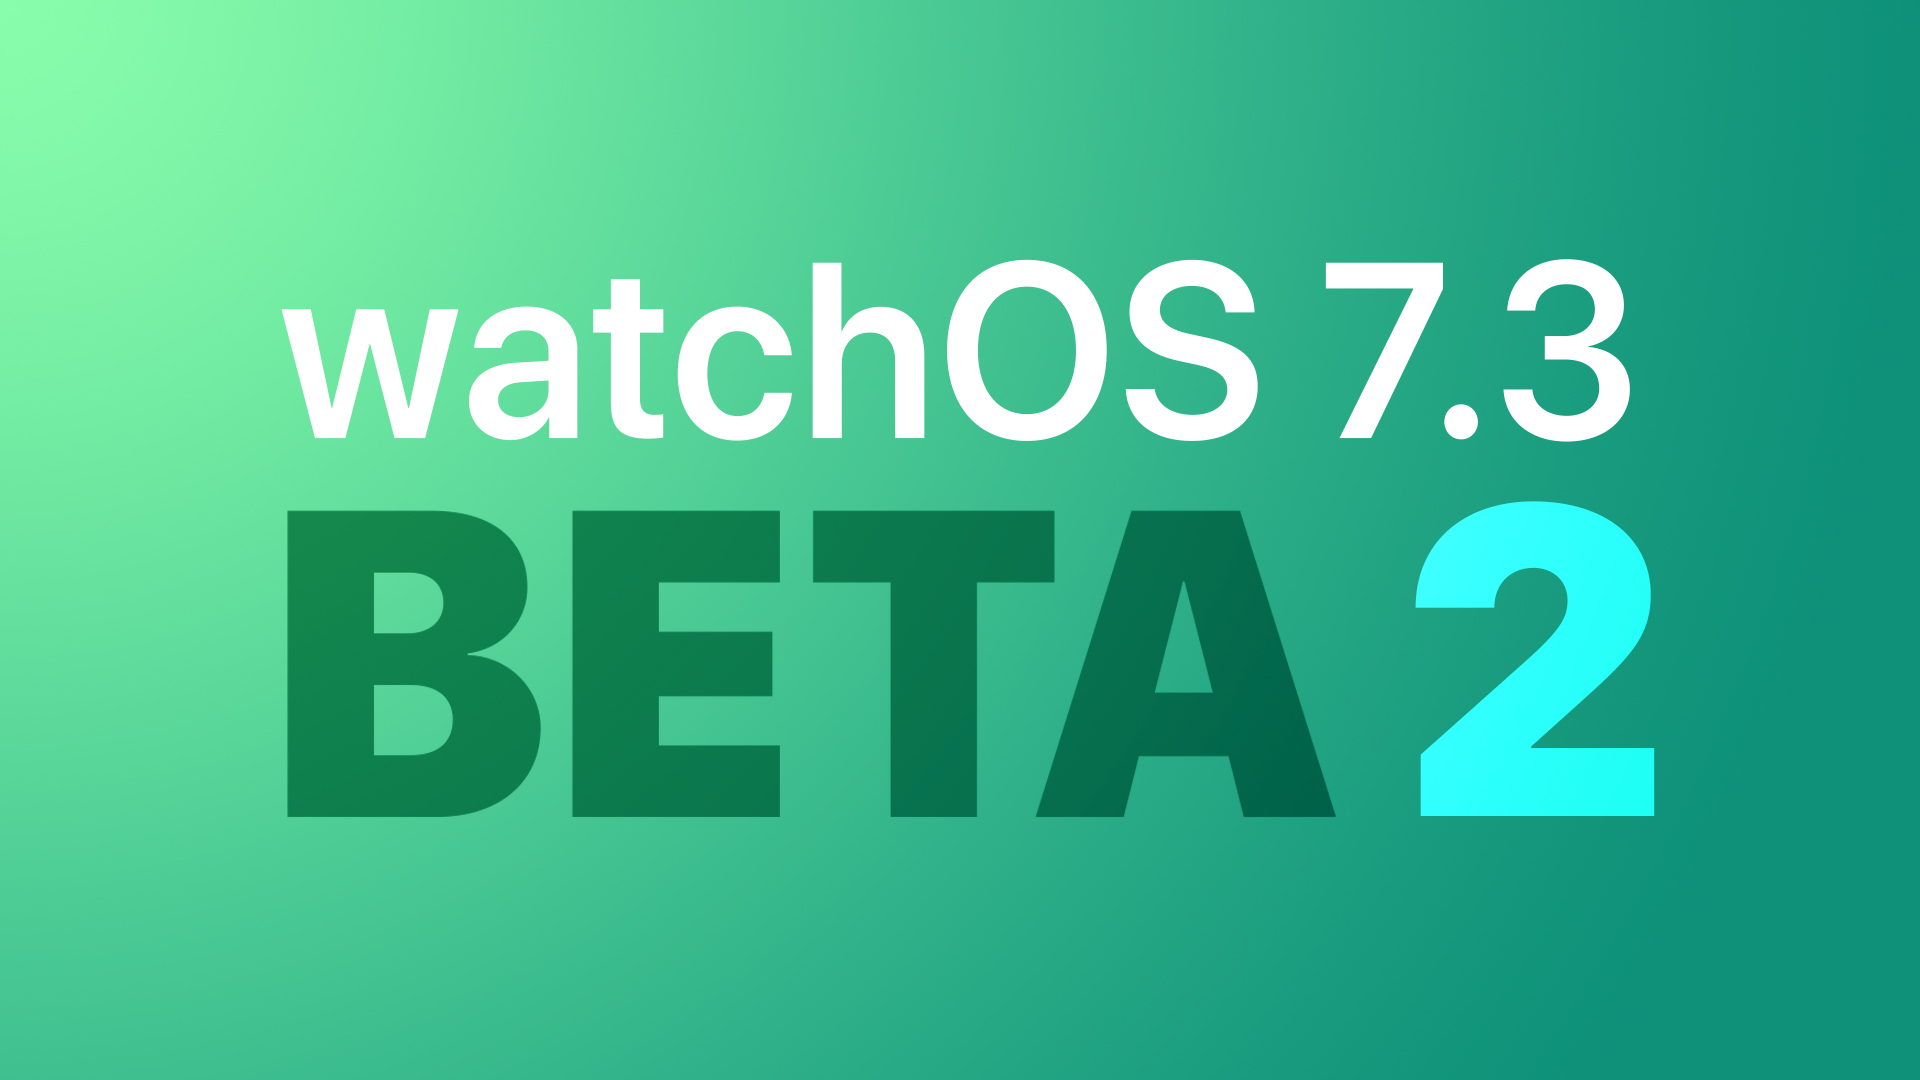 Apple Seeds Second Beta of watchOS 7.3 to Developers [Update: Public Beta Available]